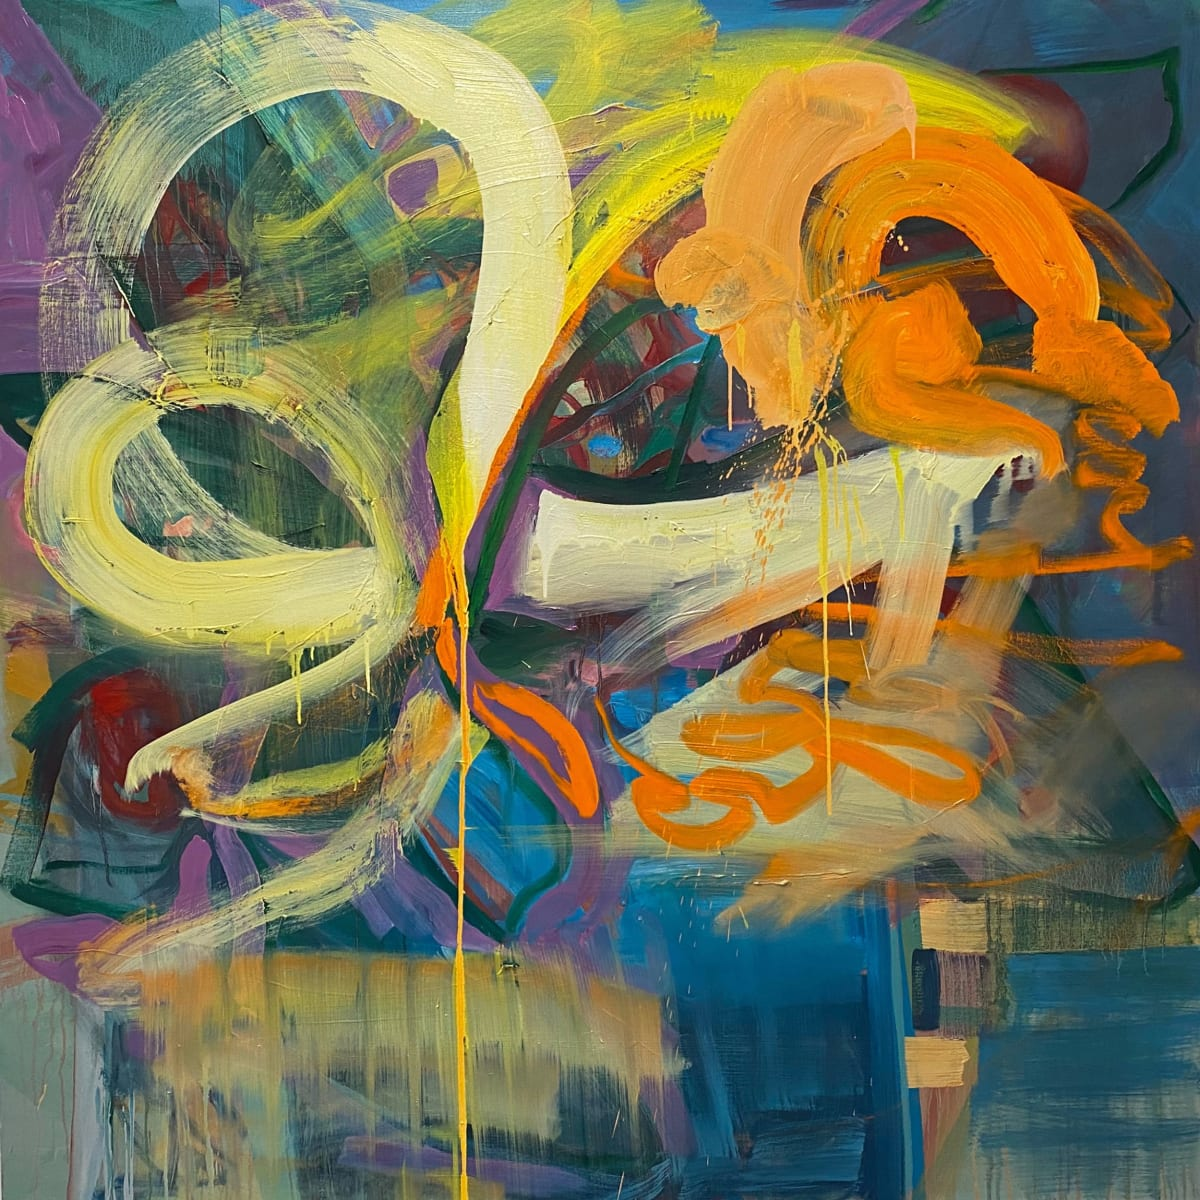 Abstract Study (graffiti) by Pamela Staker